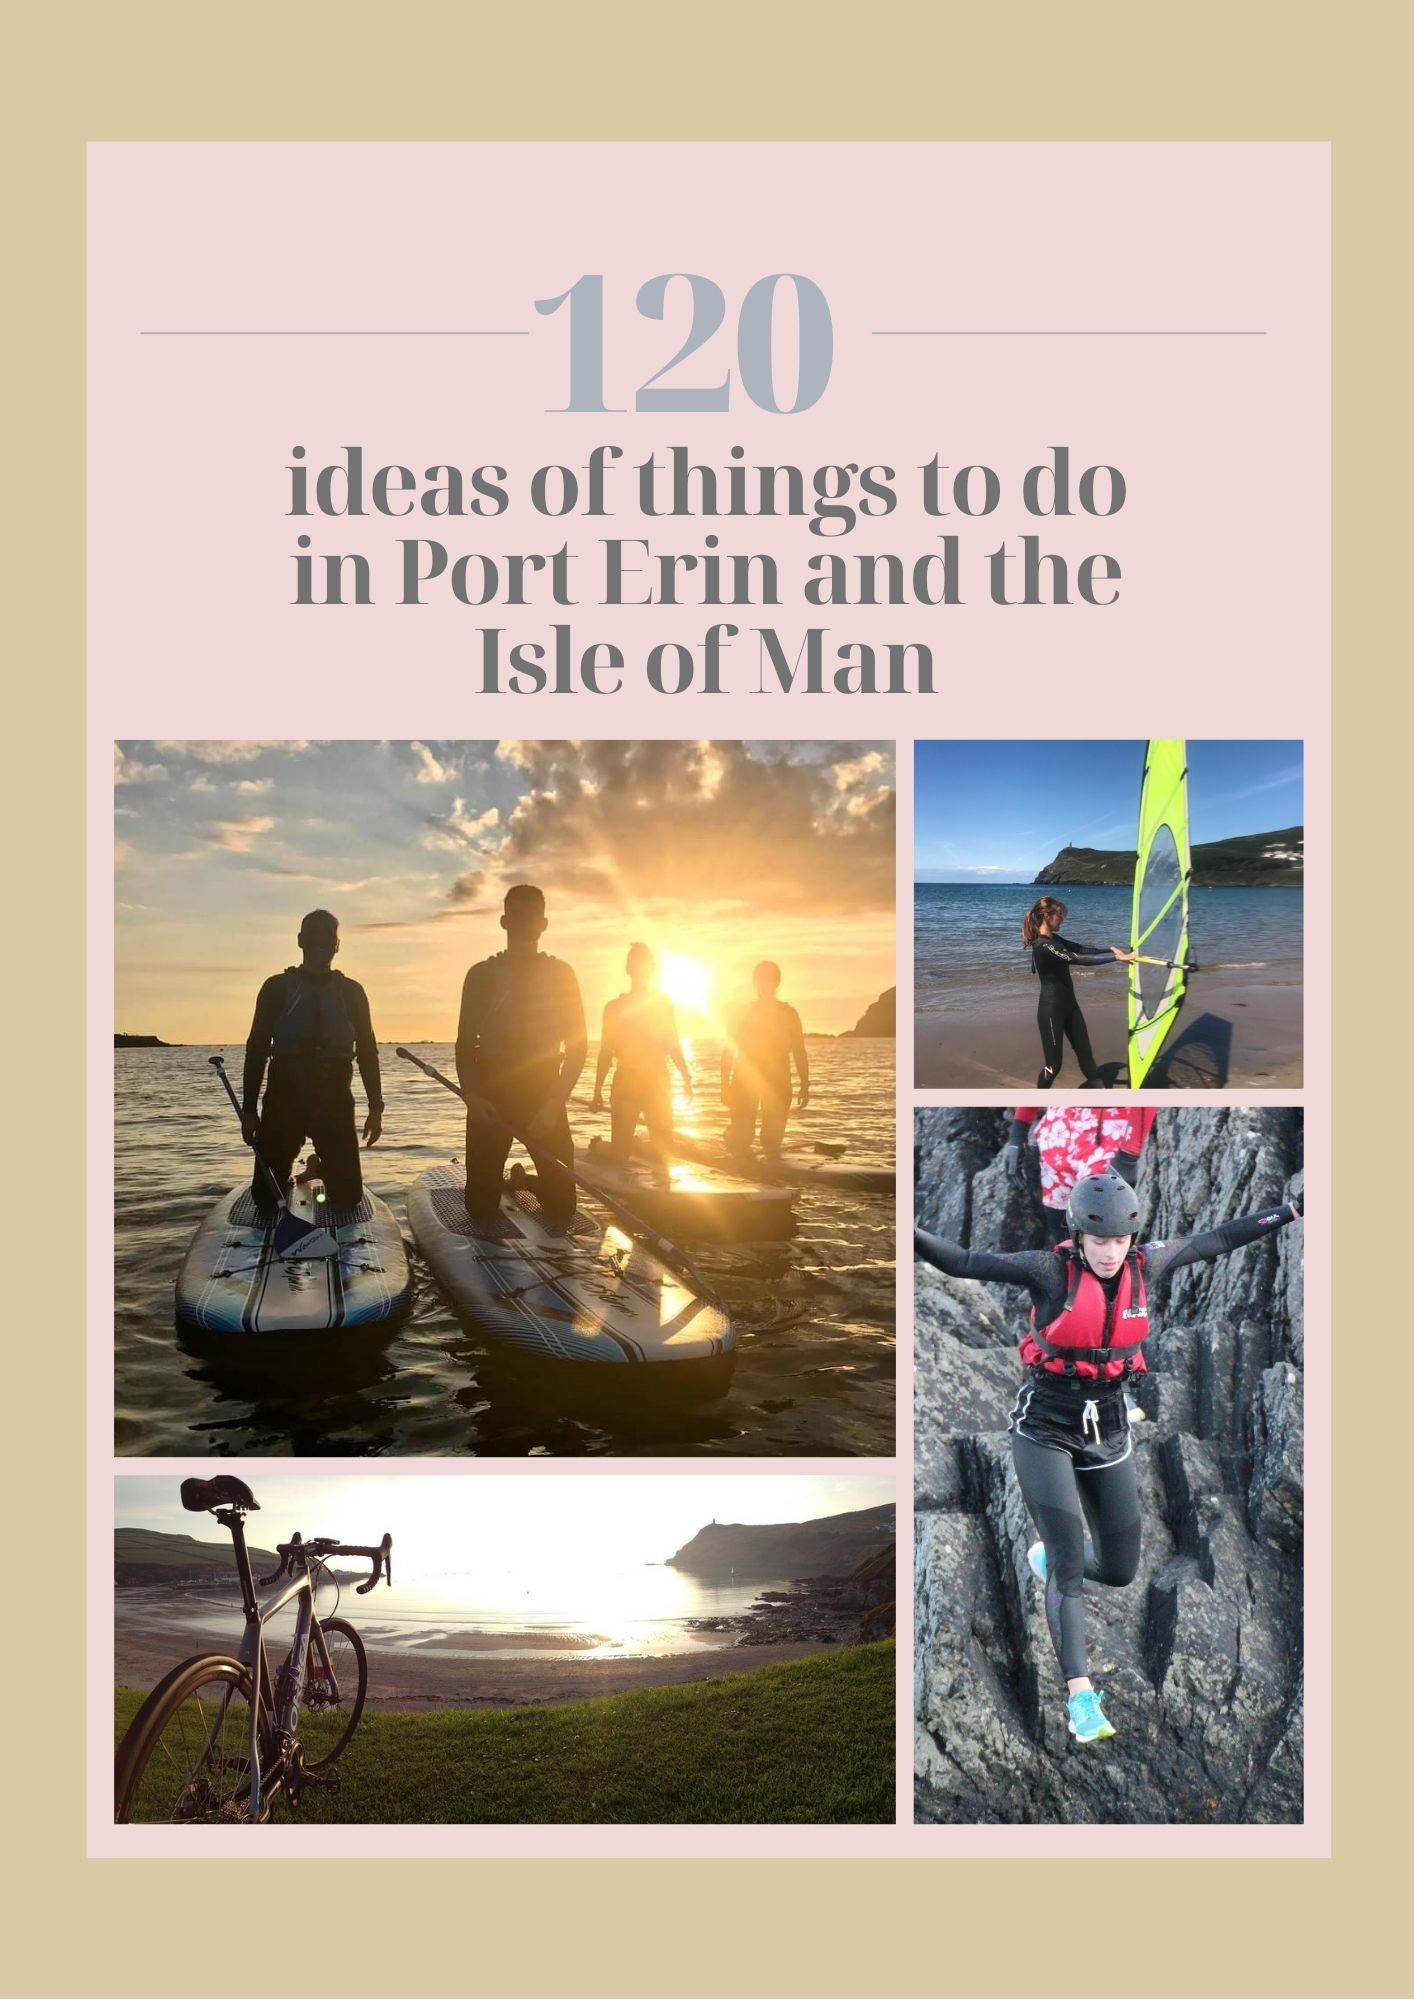 120 activities in the Isle of Man